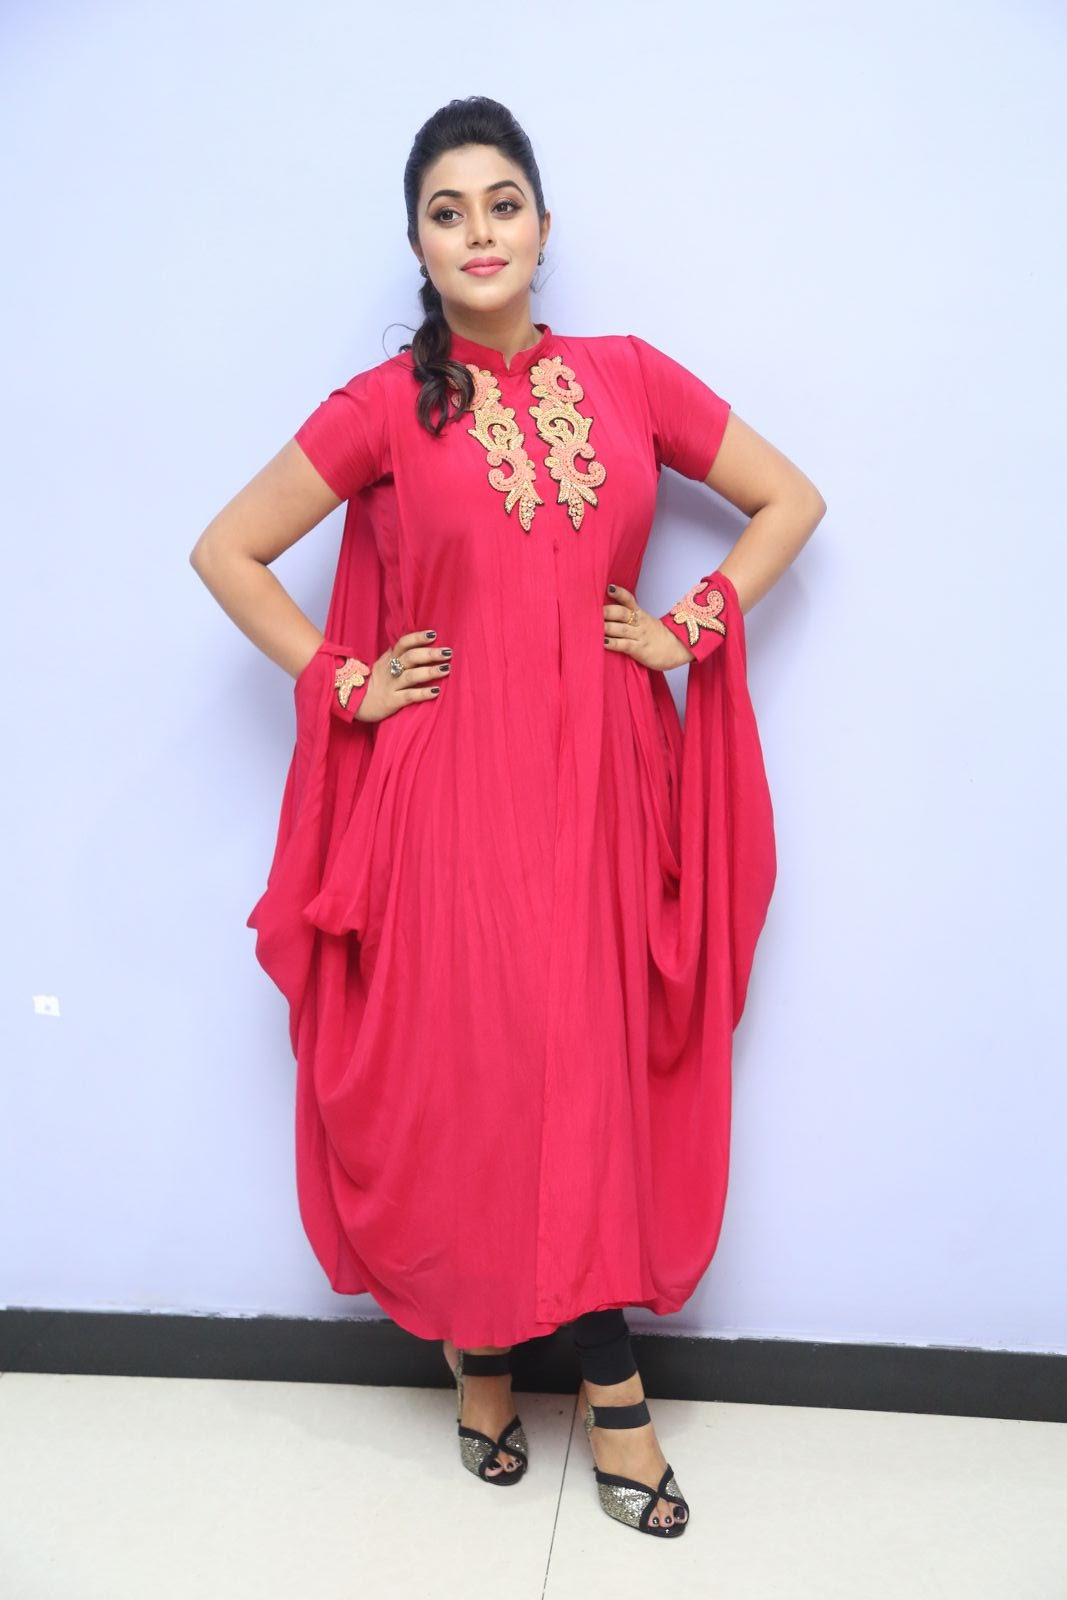 poorna new glamorous photos-HQ-Photo-20